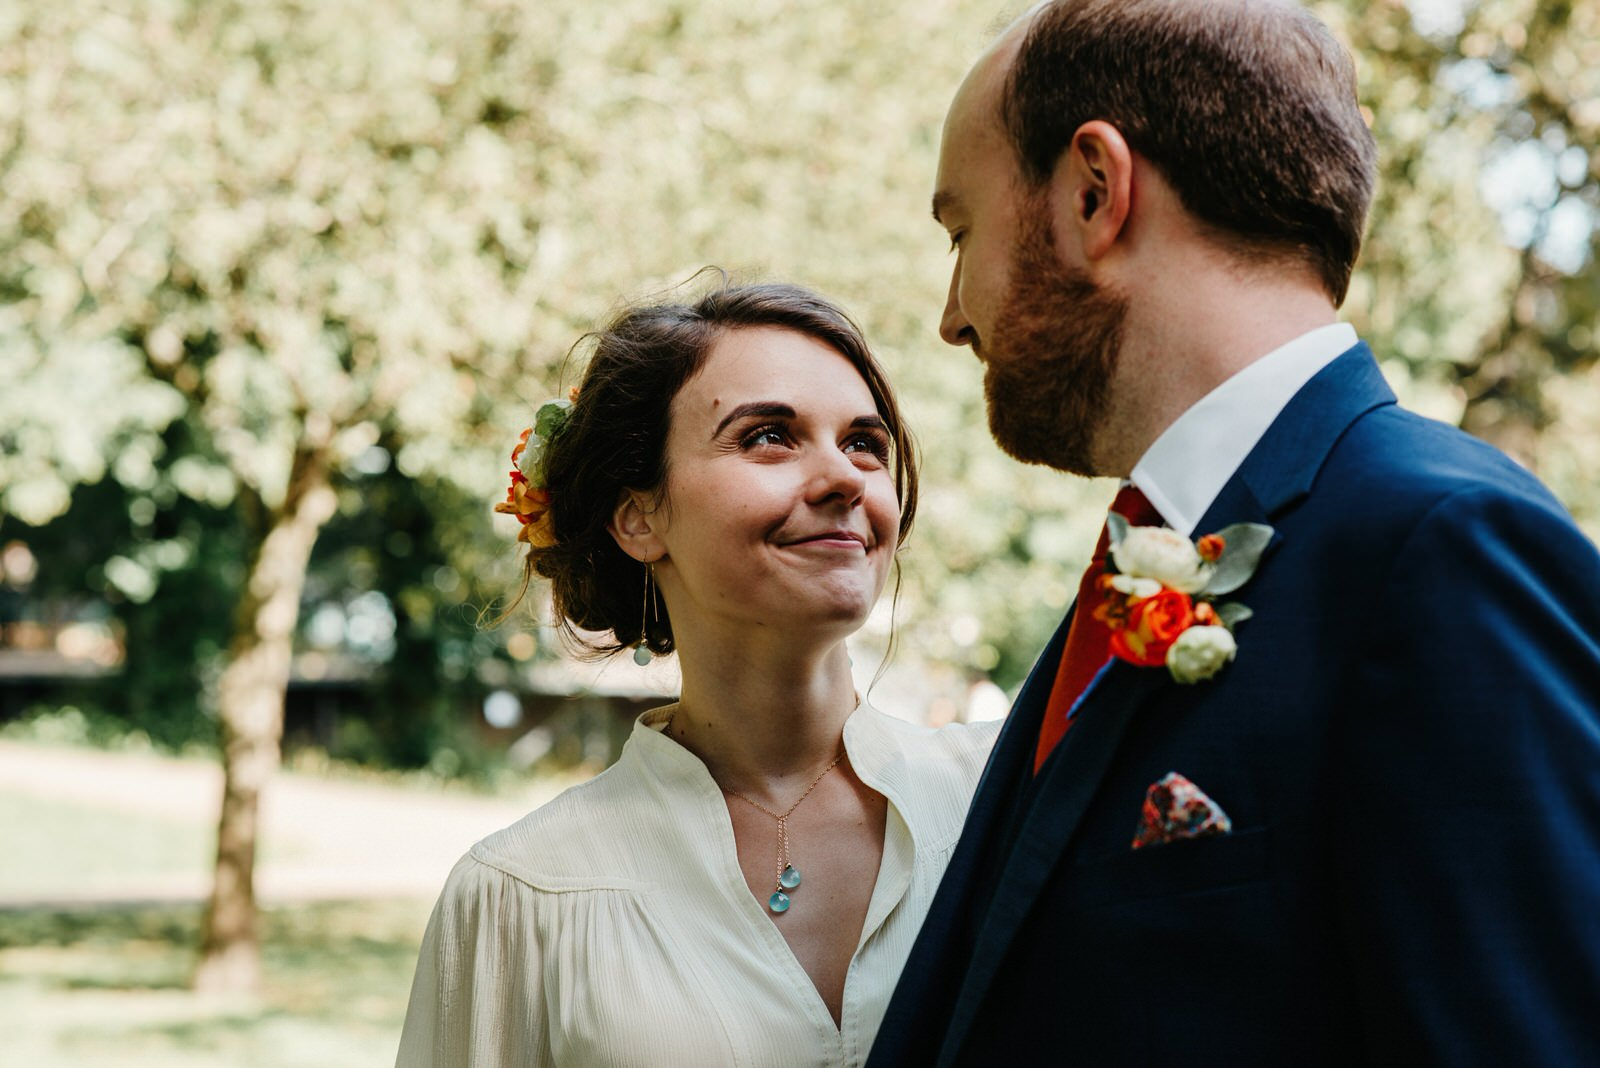 Bride looking loving at her groom following thier wedding at the Royal College of Music and Drama